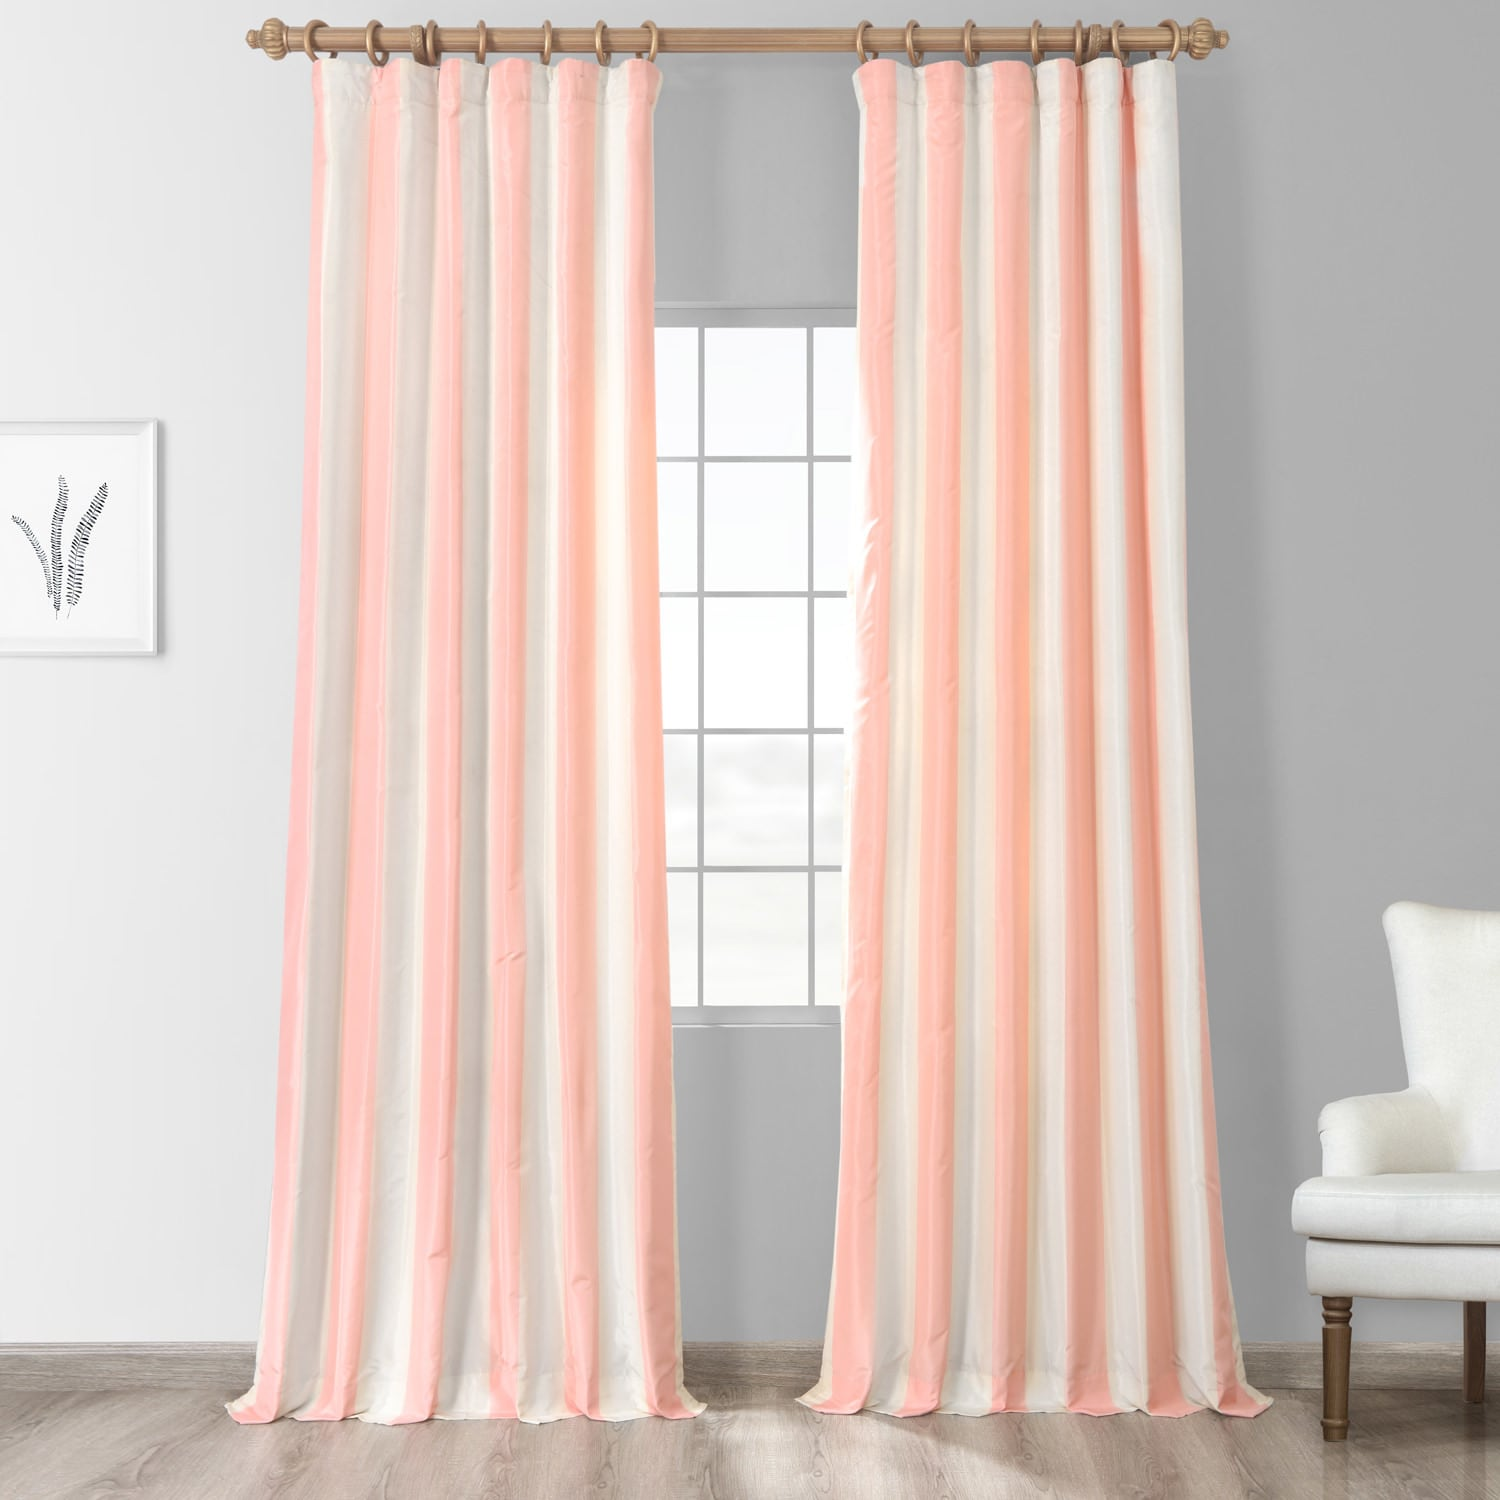 Light Peach/ Cream Stripe Faux Silk Taffeta 84-inch Curtain Panel at Sears.com